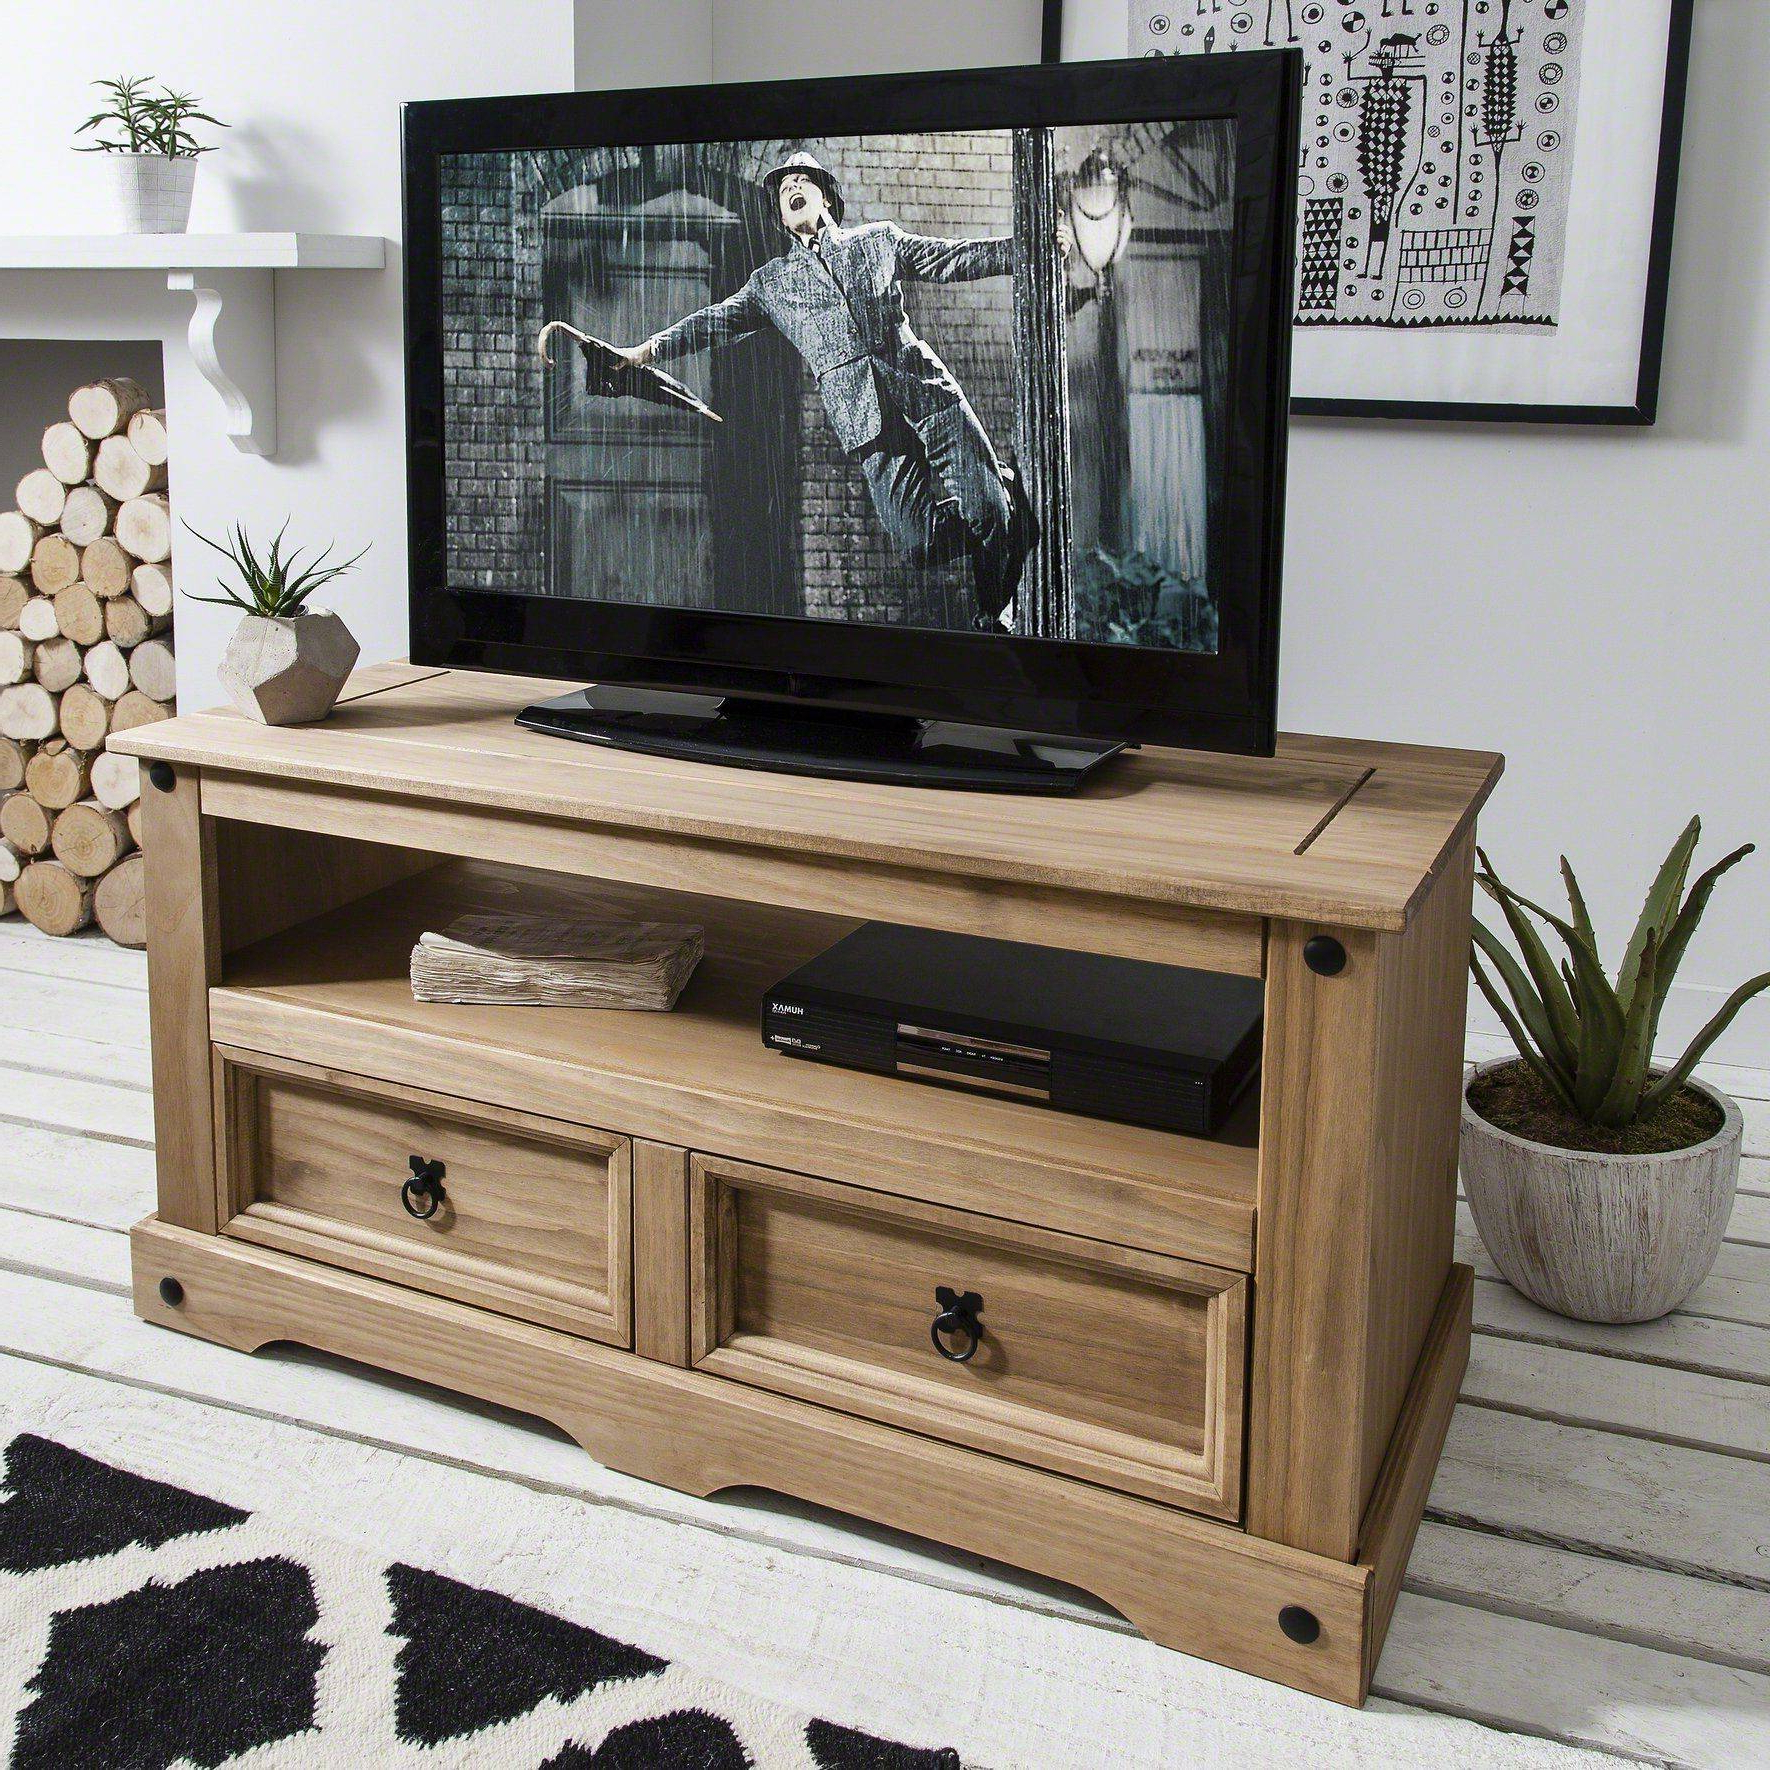 Unique Tv Stands For Flat Screens With Regard To 2018 Cheap Flat Screen Tv Stands Unique Laura James Flat Screen Tv Unit (View 14 of 20)